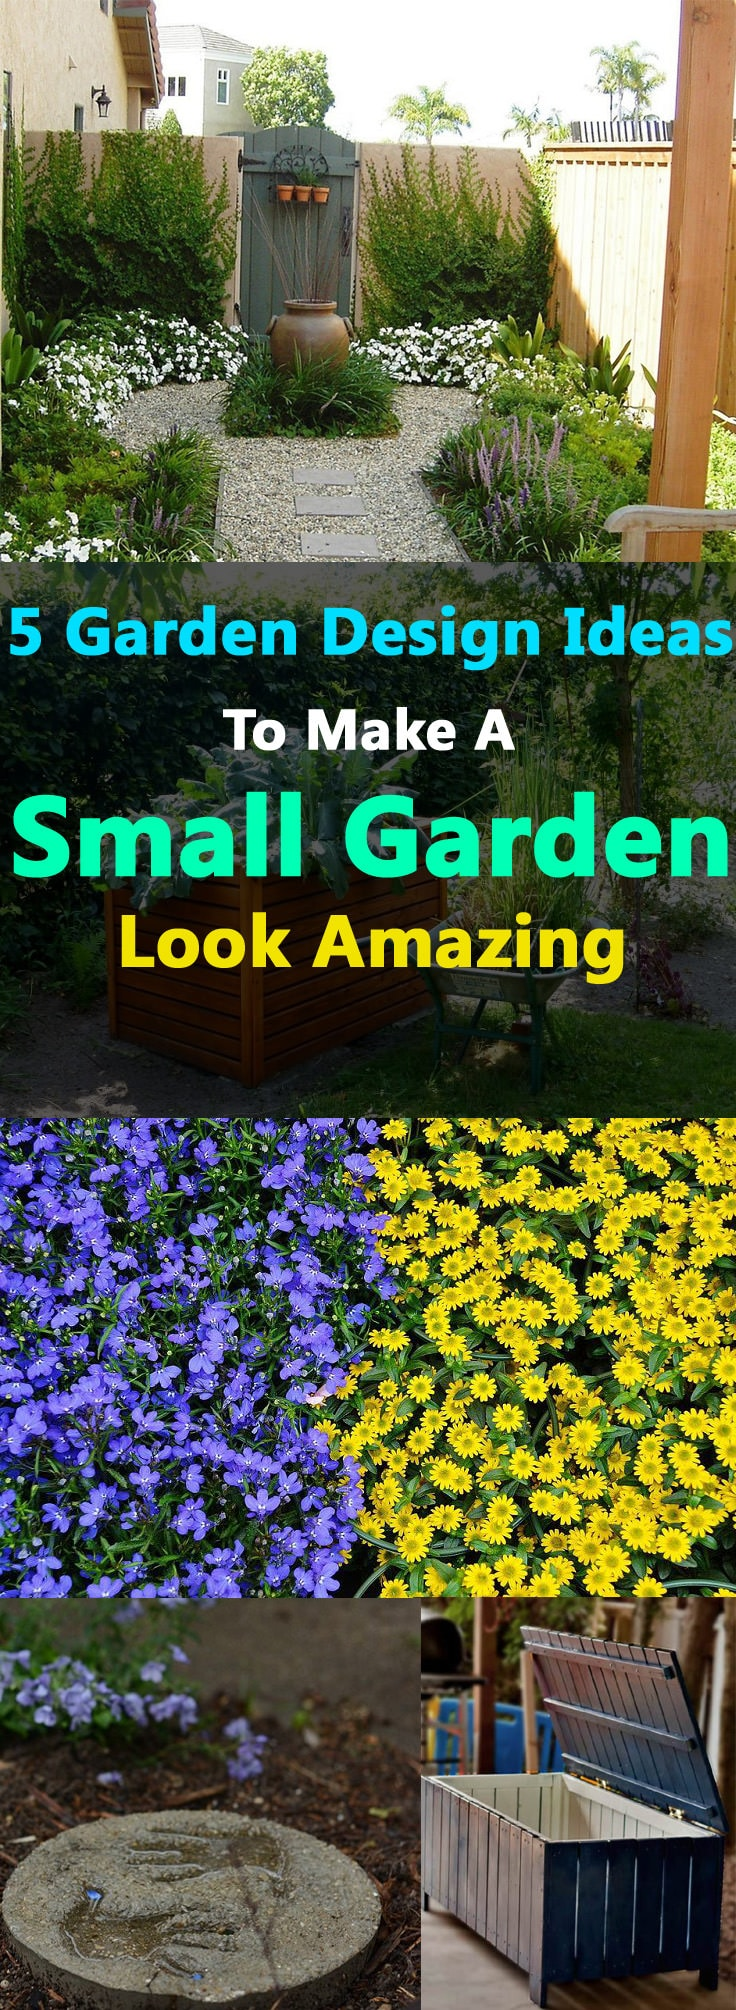 5 garden design ideas to make a small garden look amazing balcony garden web for Amazing small gardens